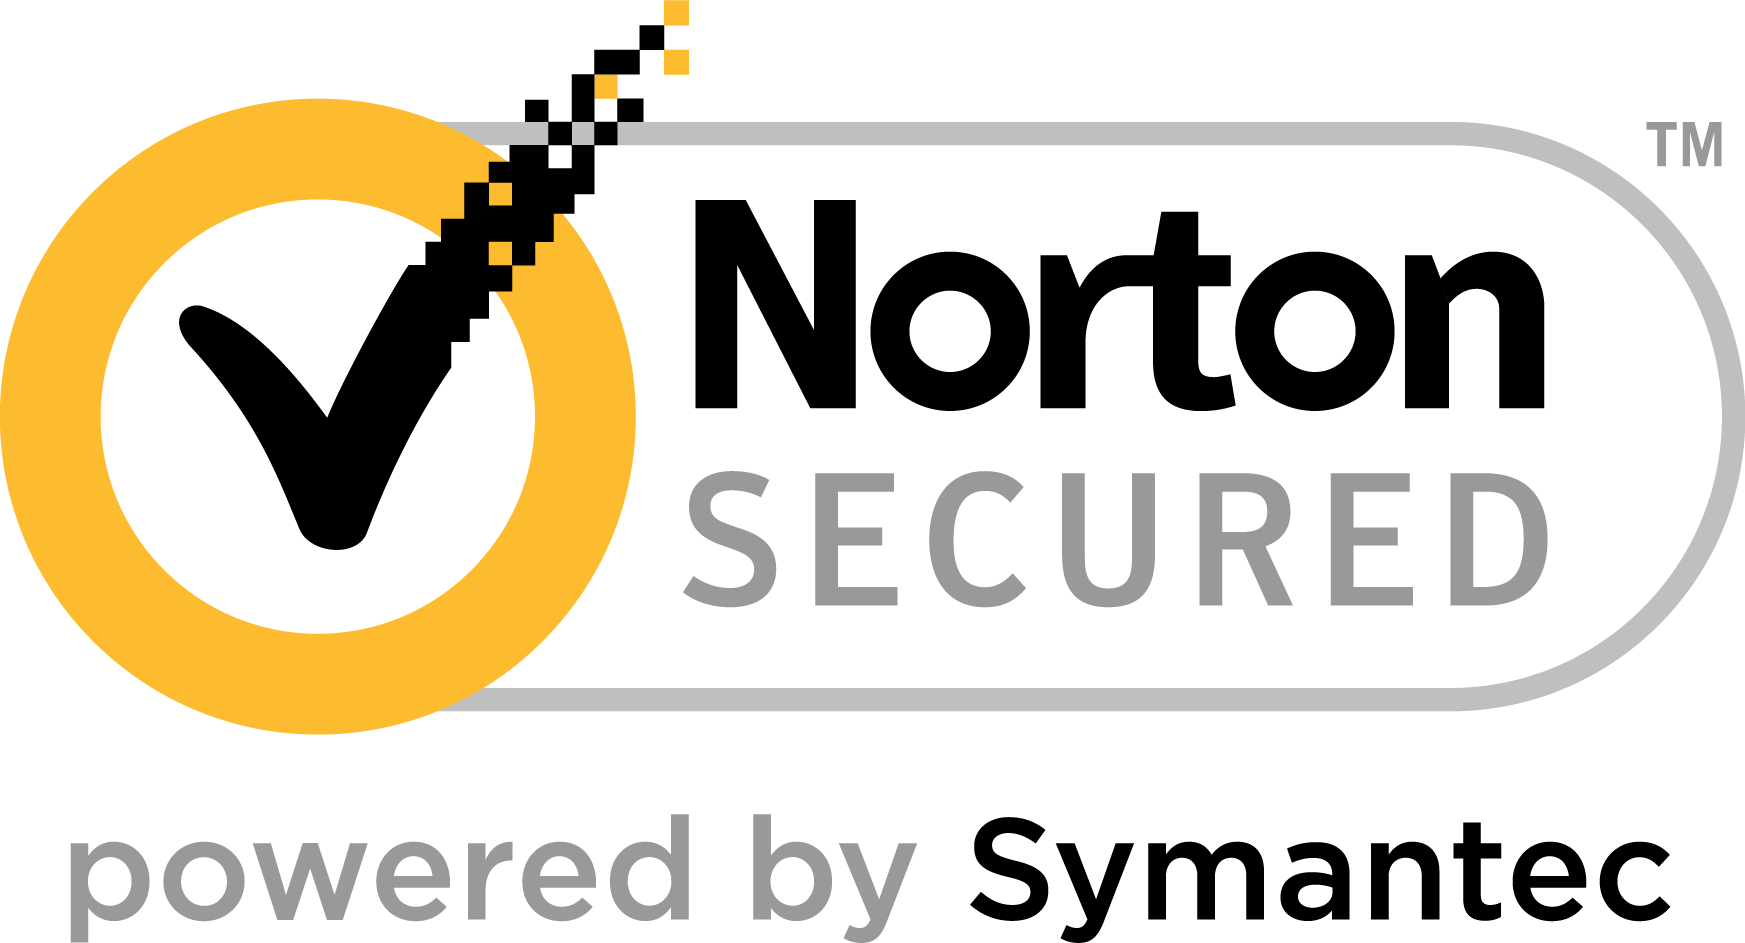 ooma.com is Norton Secured